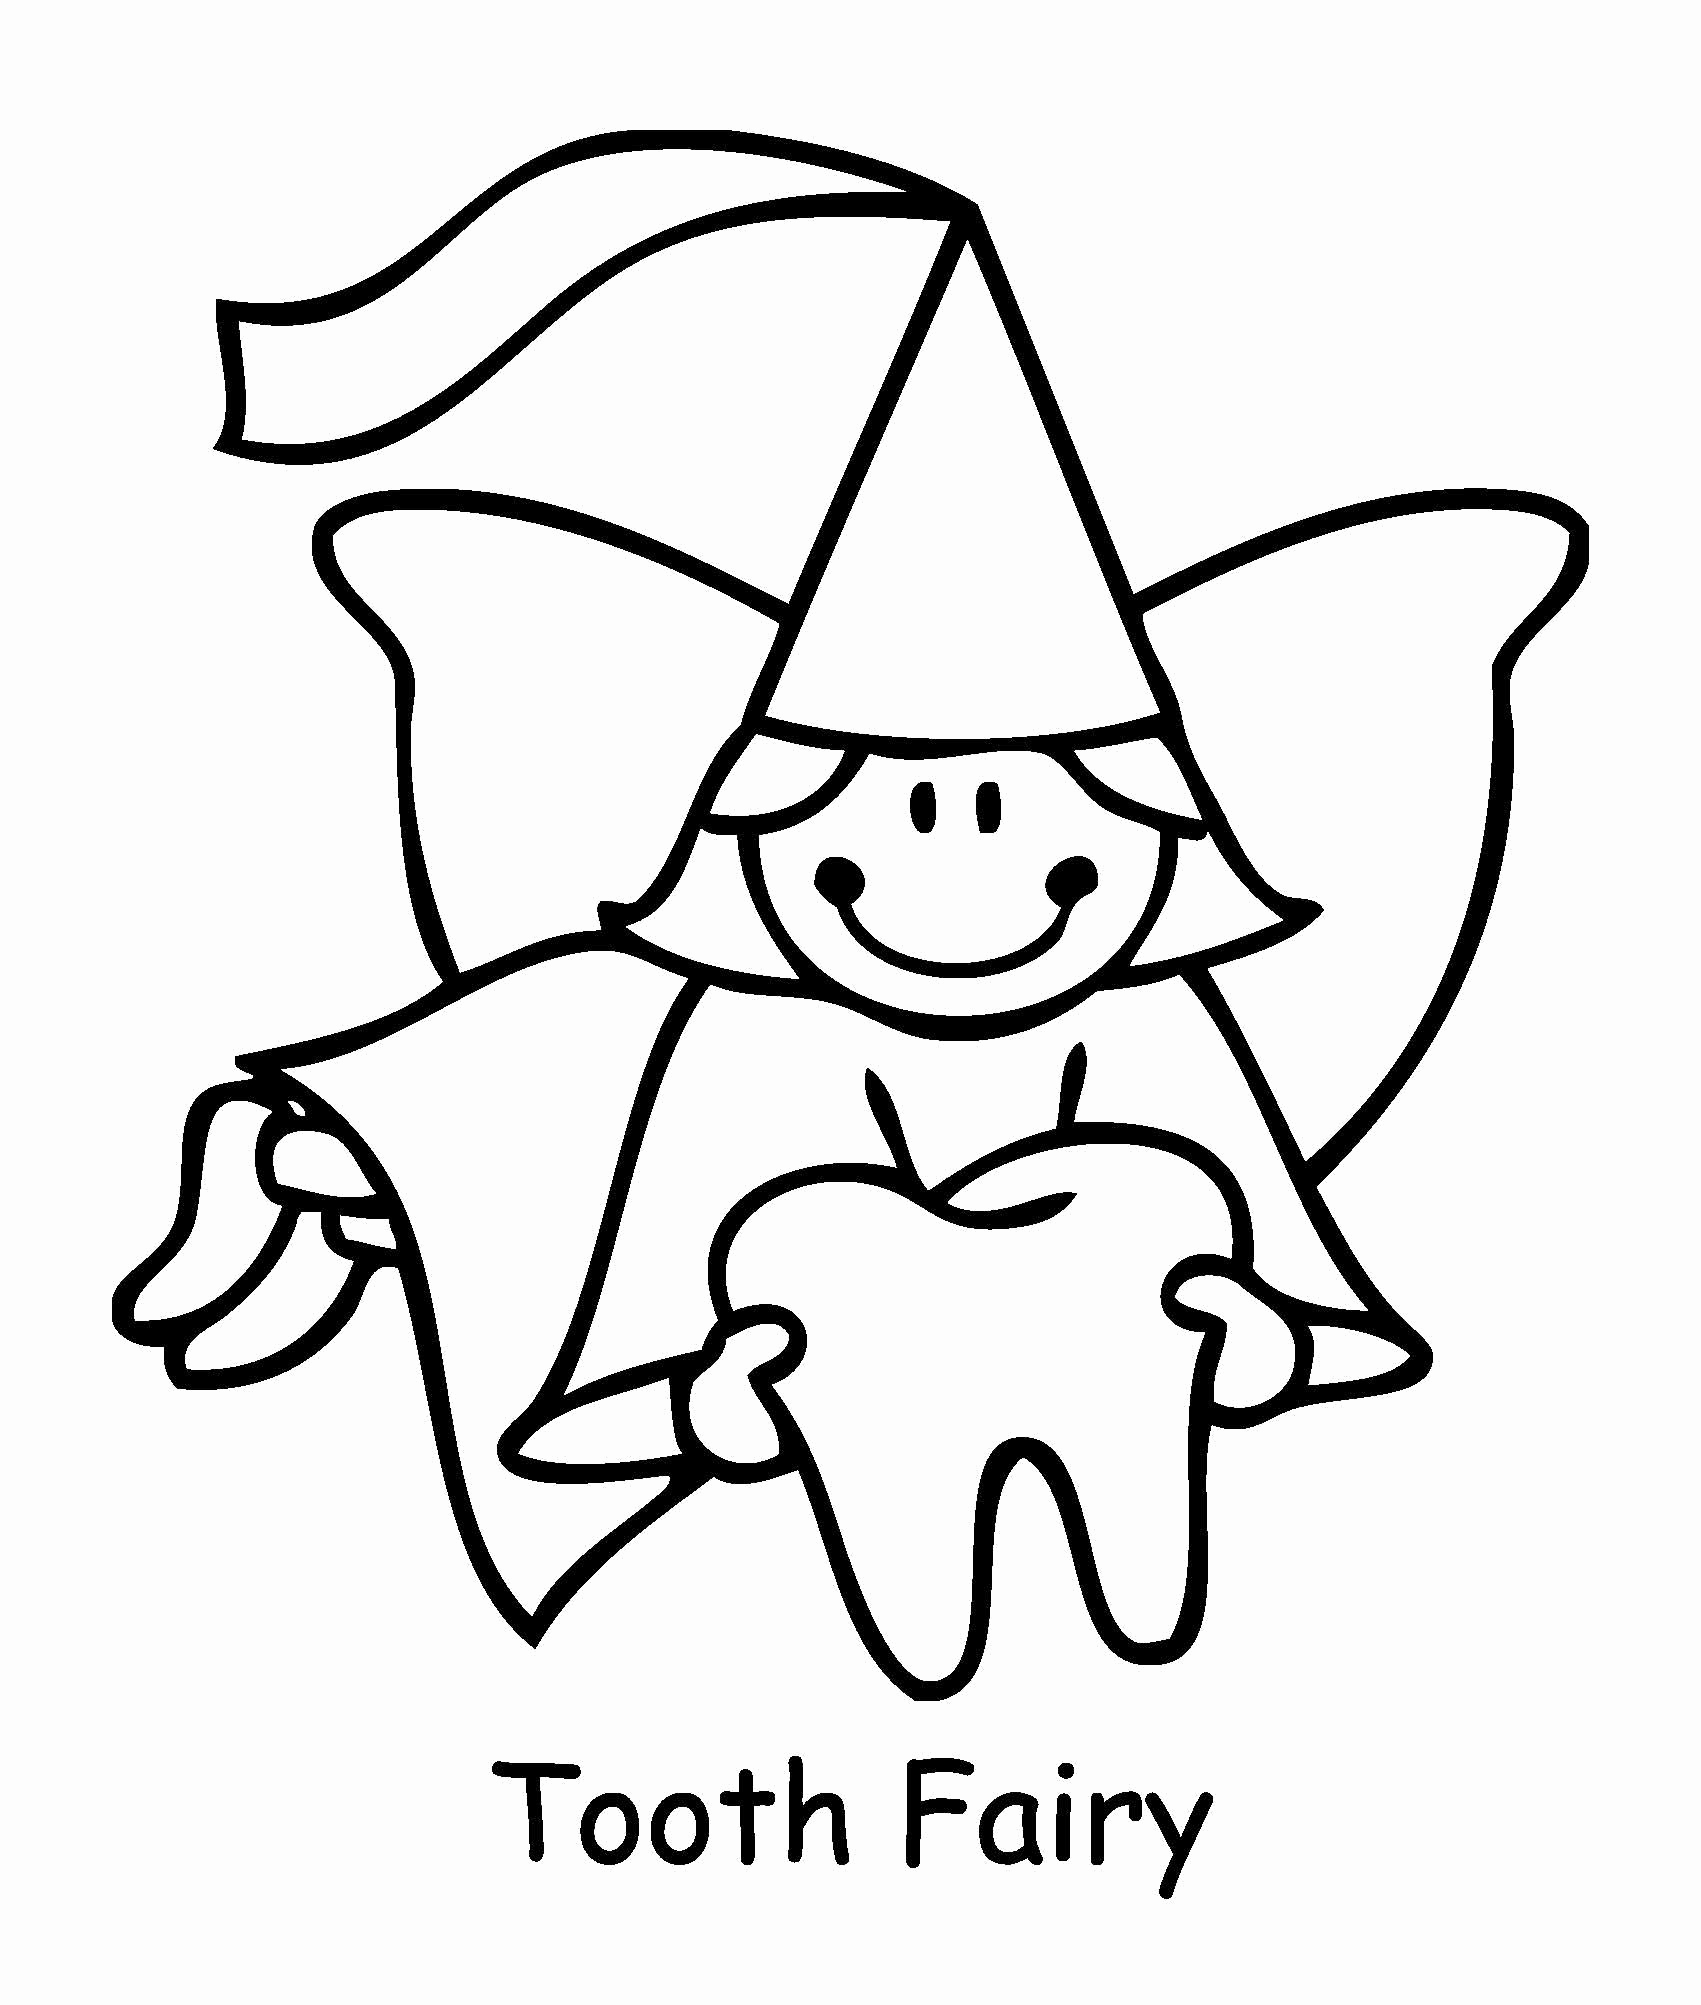 Dental Coloring Pages Collection Teeth Coloring Pages Coloring to Print Of Coloring Pages tooth Coloring Pages Unique Happy Brush Dental Page Gallery